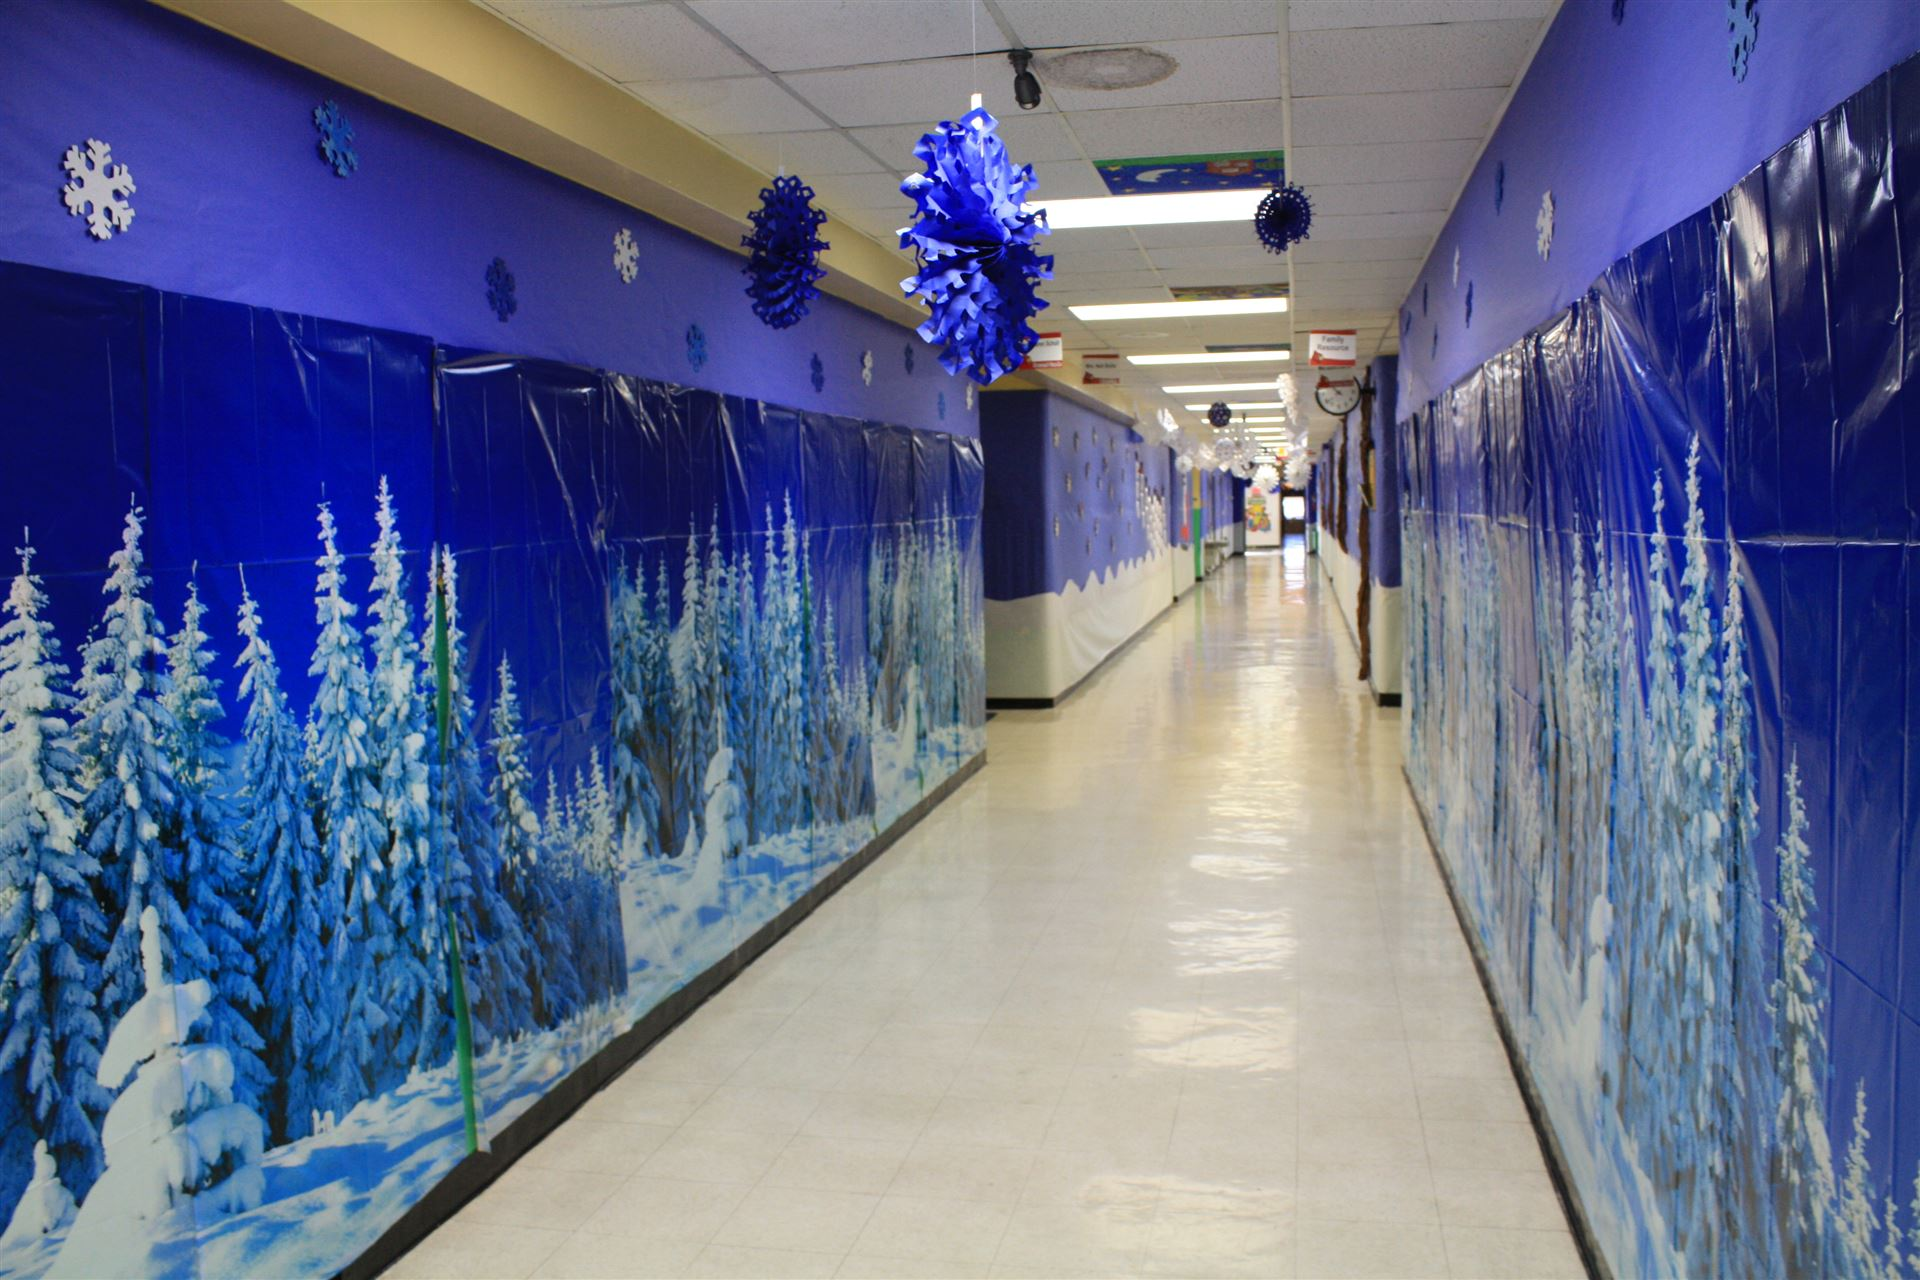 School hallway christmas decorating ideas ideas for Christmas hall decorations